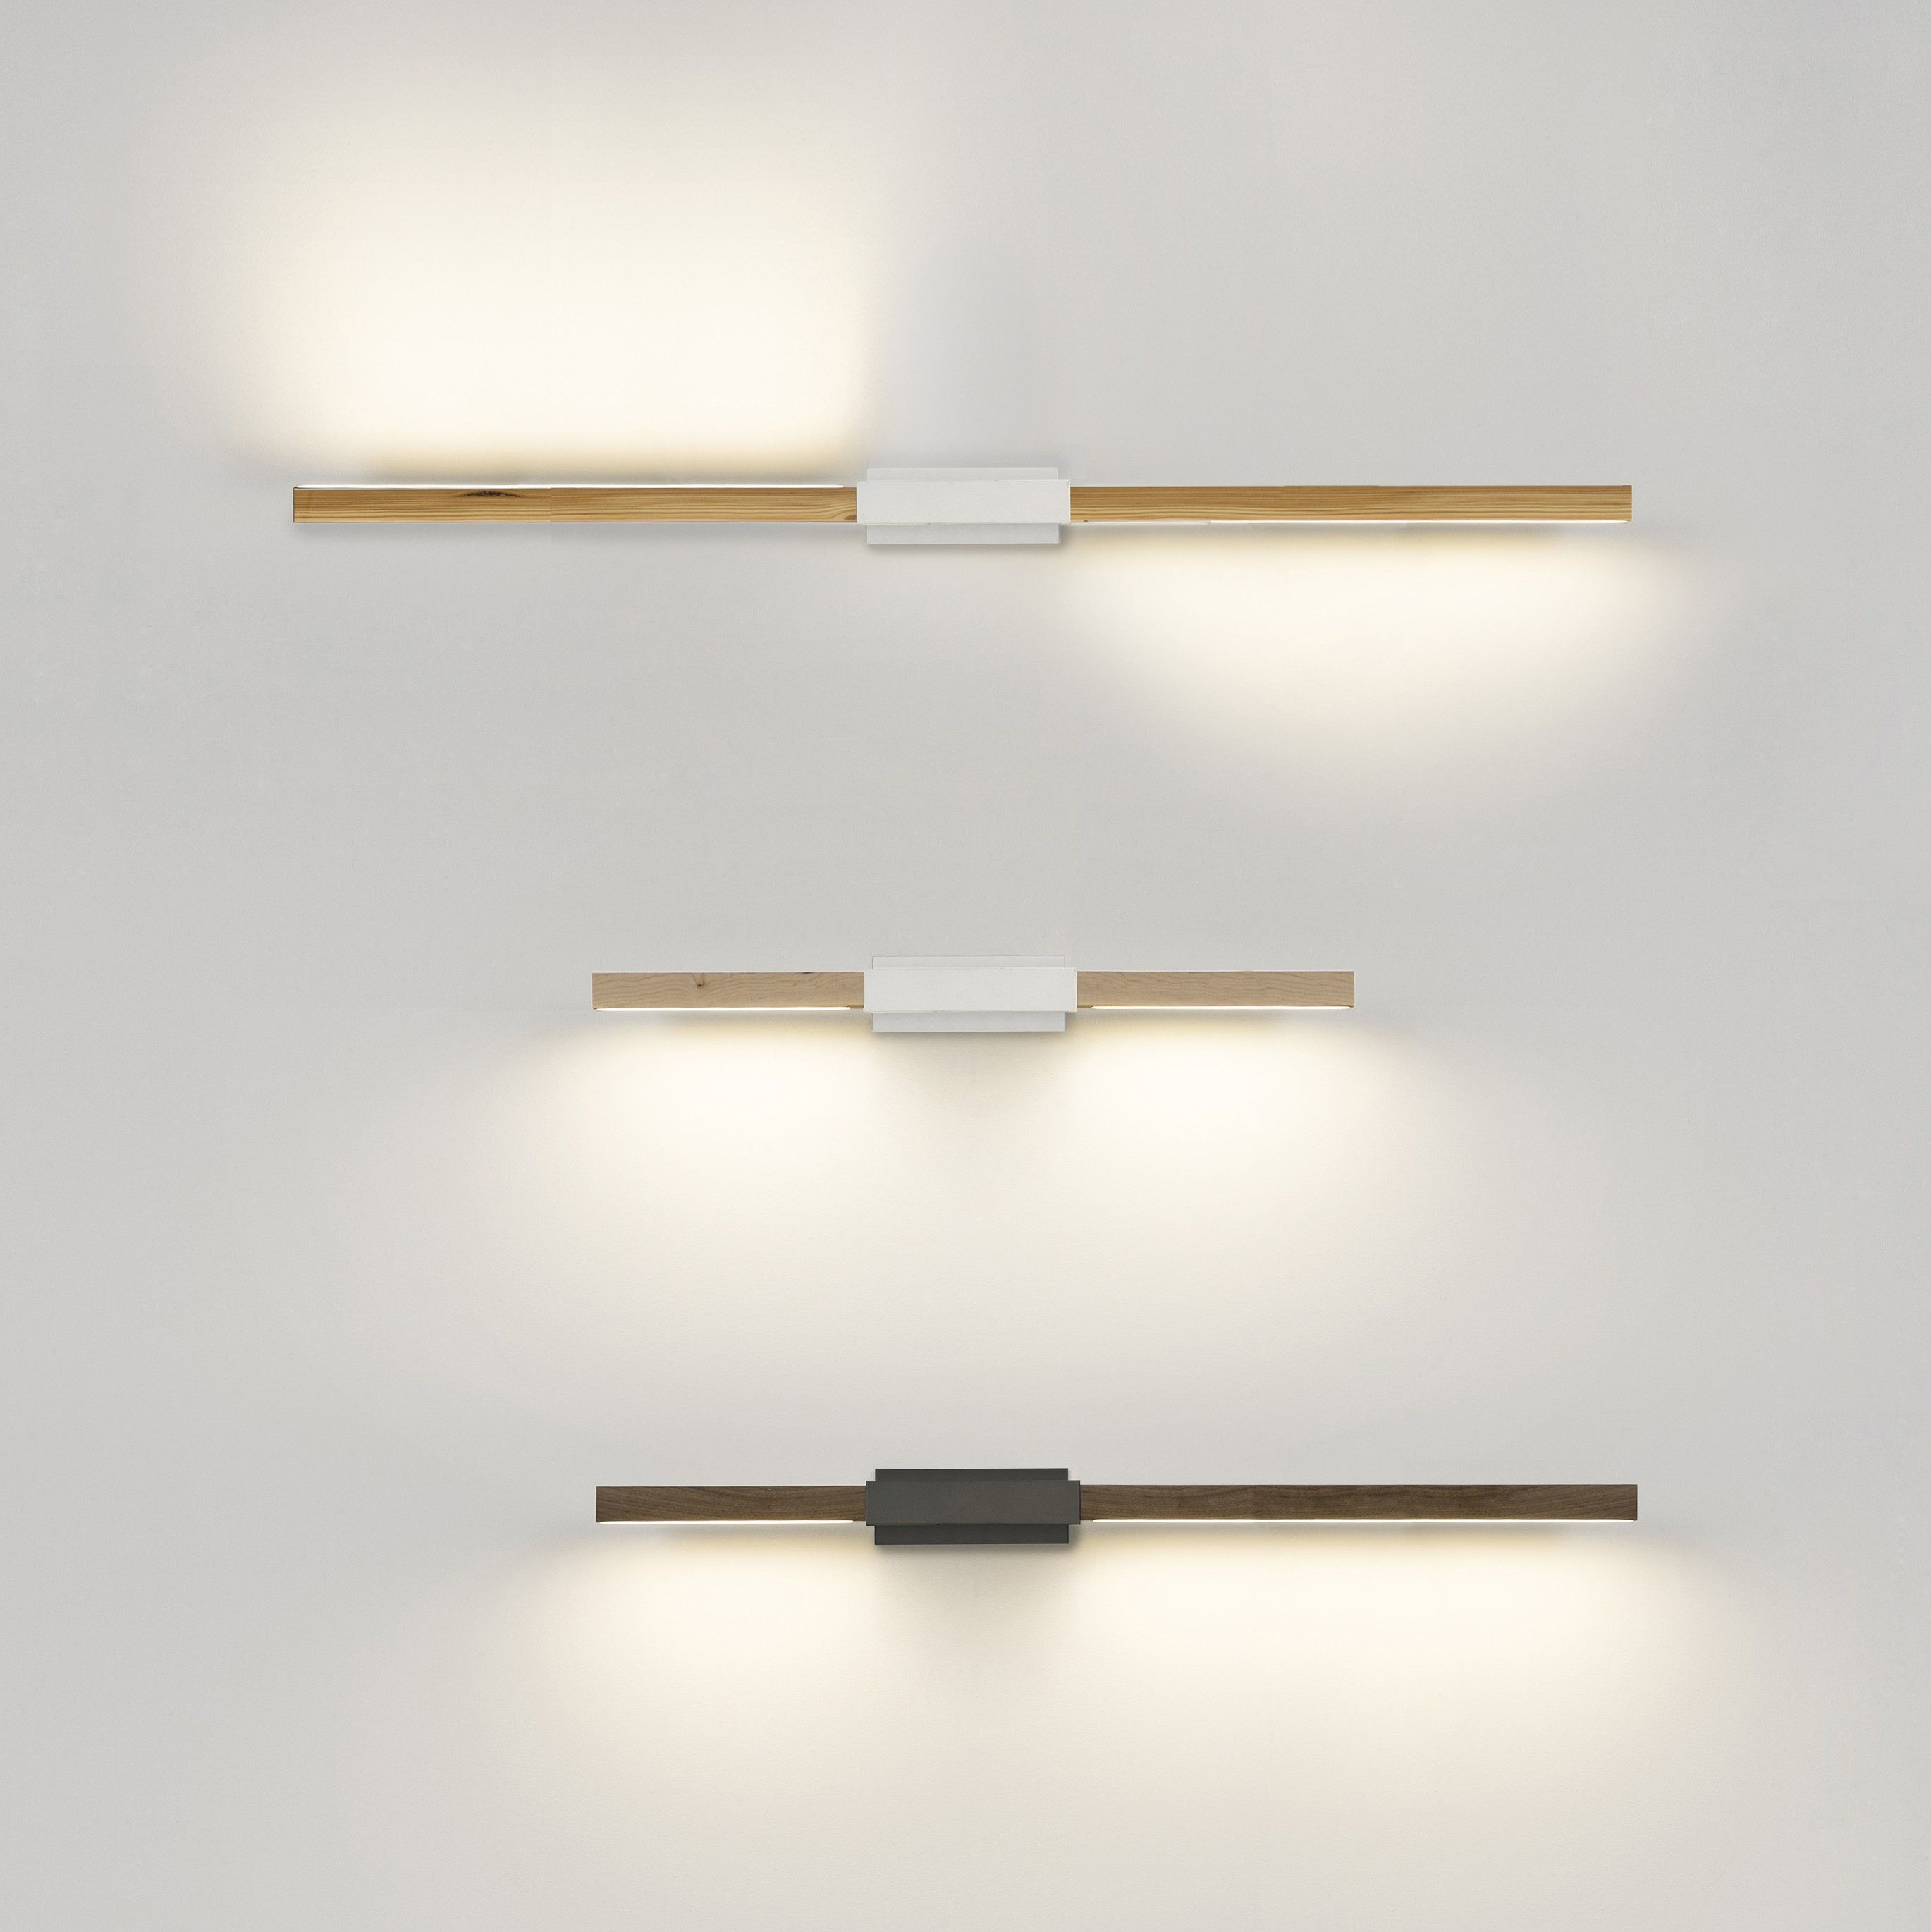 Horizontal Sconce By Stickbulb In 2019 Interior Lighting